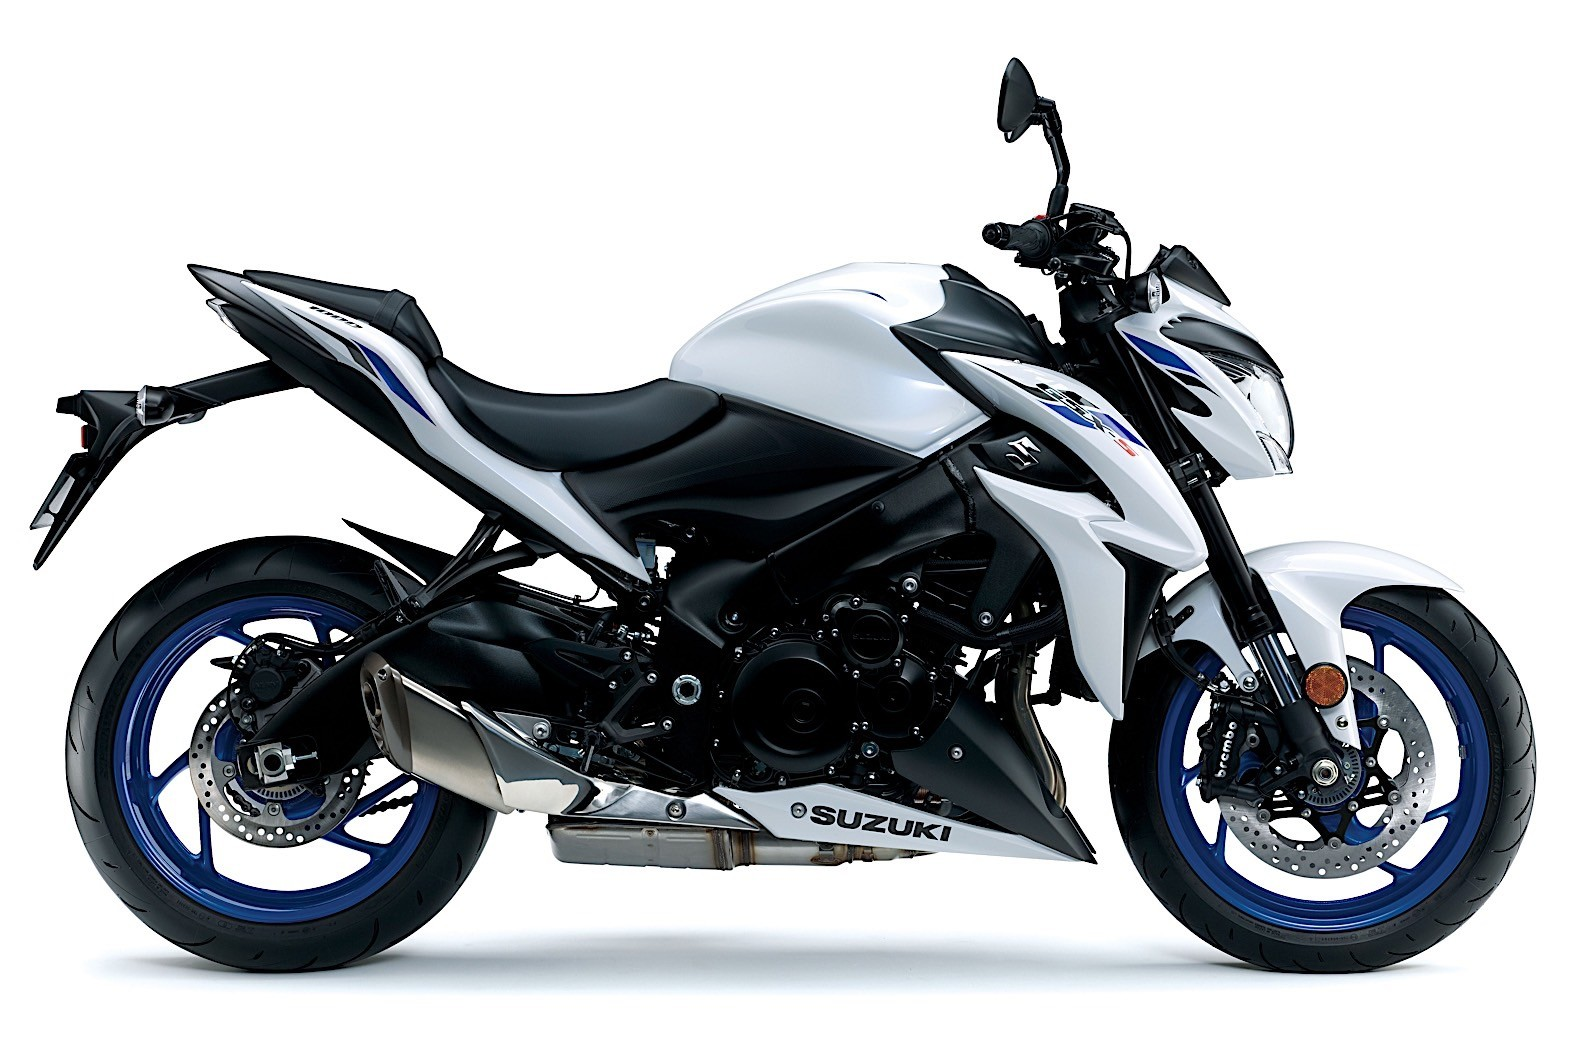 2019-suzuki-motorcycles-shine-in-new-colors-at-the-motorcycle-live-31